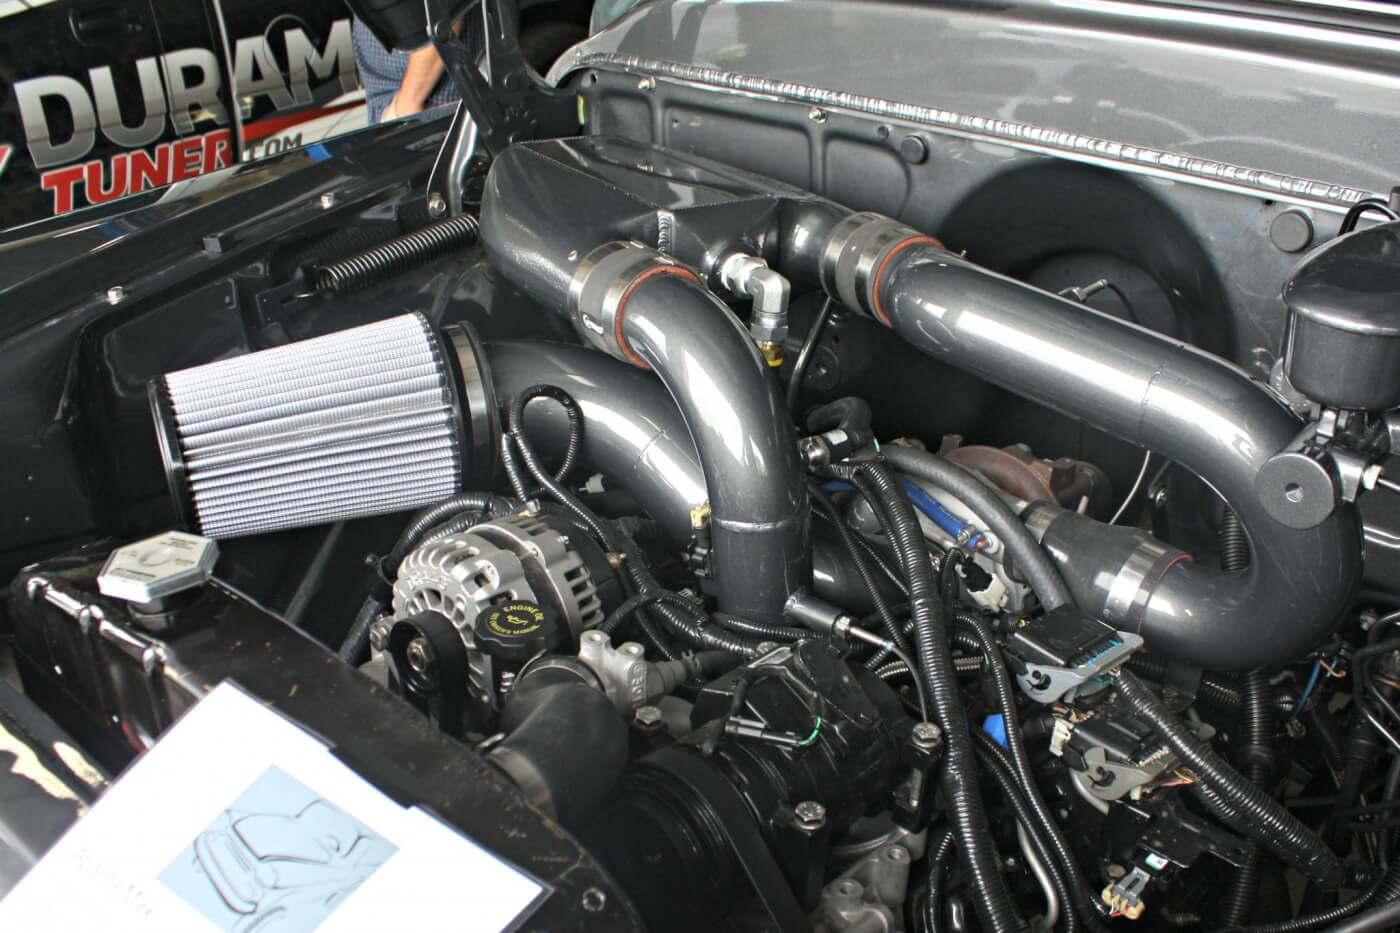 Make 600+HP Under the Radar: Duramax Tuner's 2001-2004 LB7 Stealth on lb7 exhaust diagram, lb7 injector parts diagram, duramax diesel engine diagram, lb7 motor diagram, 05 duramax fuel system diagram, lb7 thermostat diagram, lb7 engine, vacuum diagram, lb7 fuel diagram,